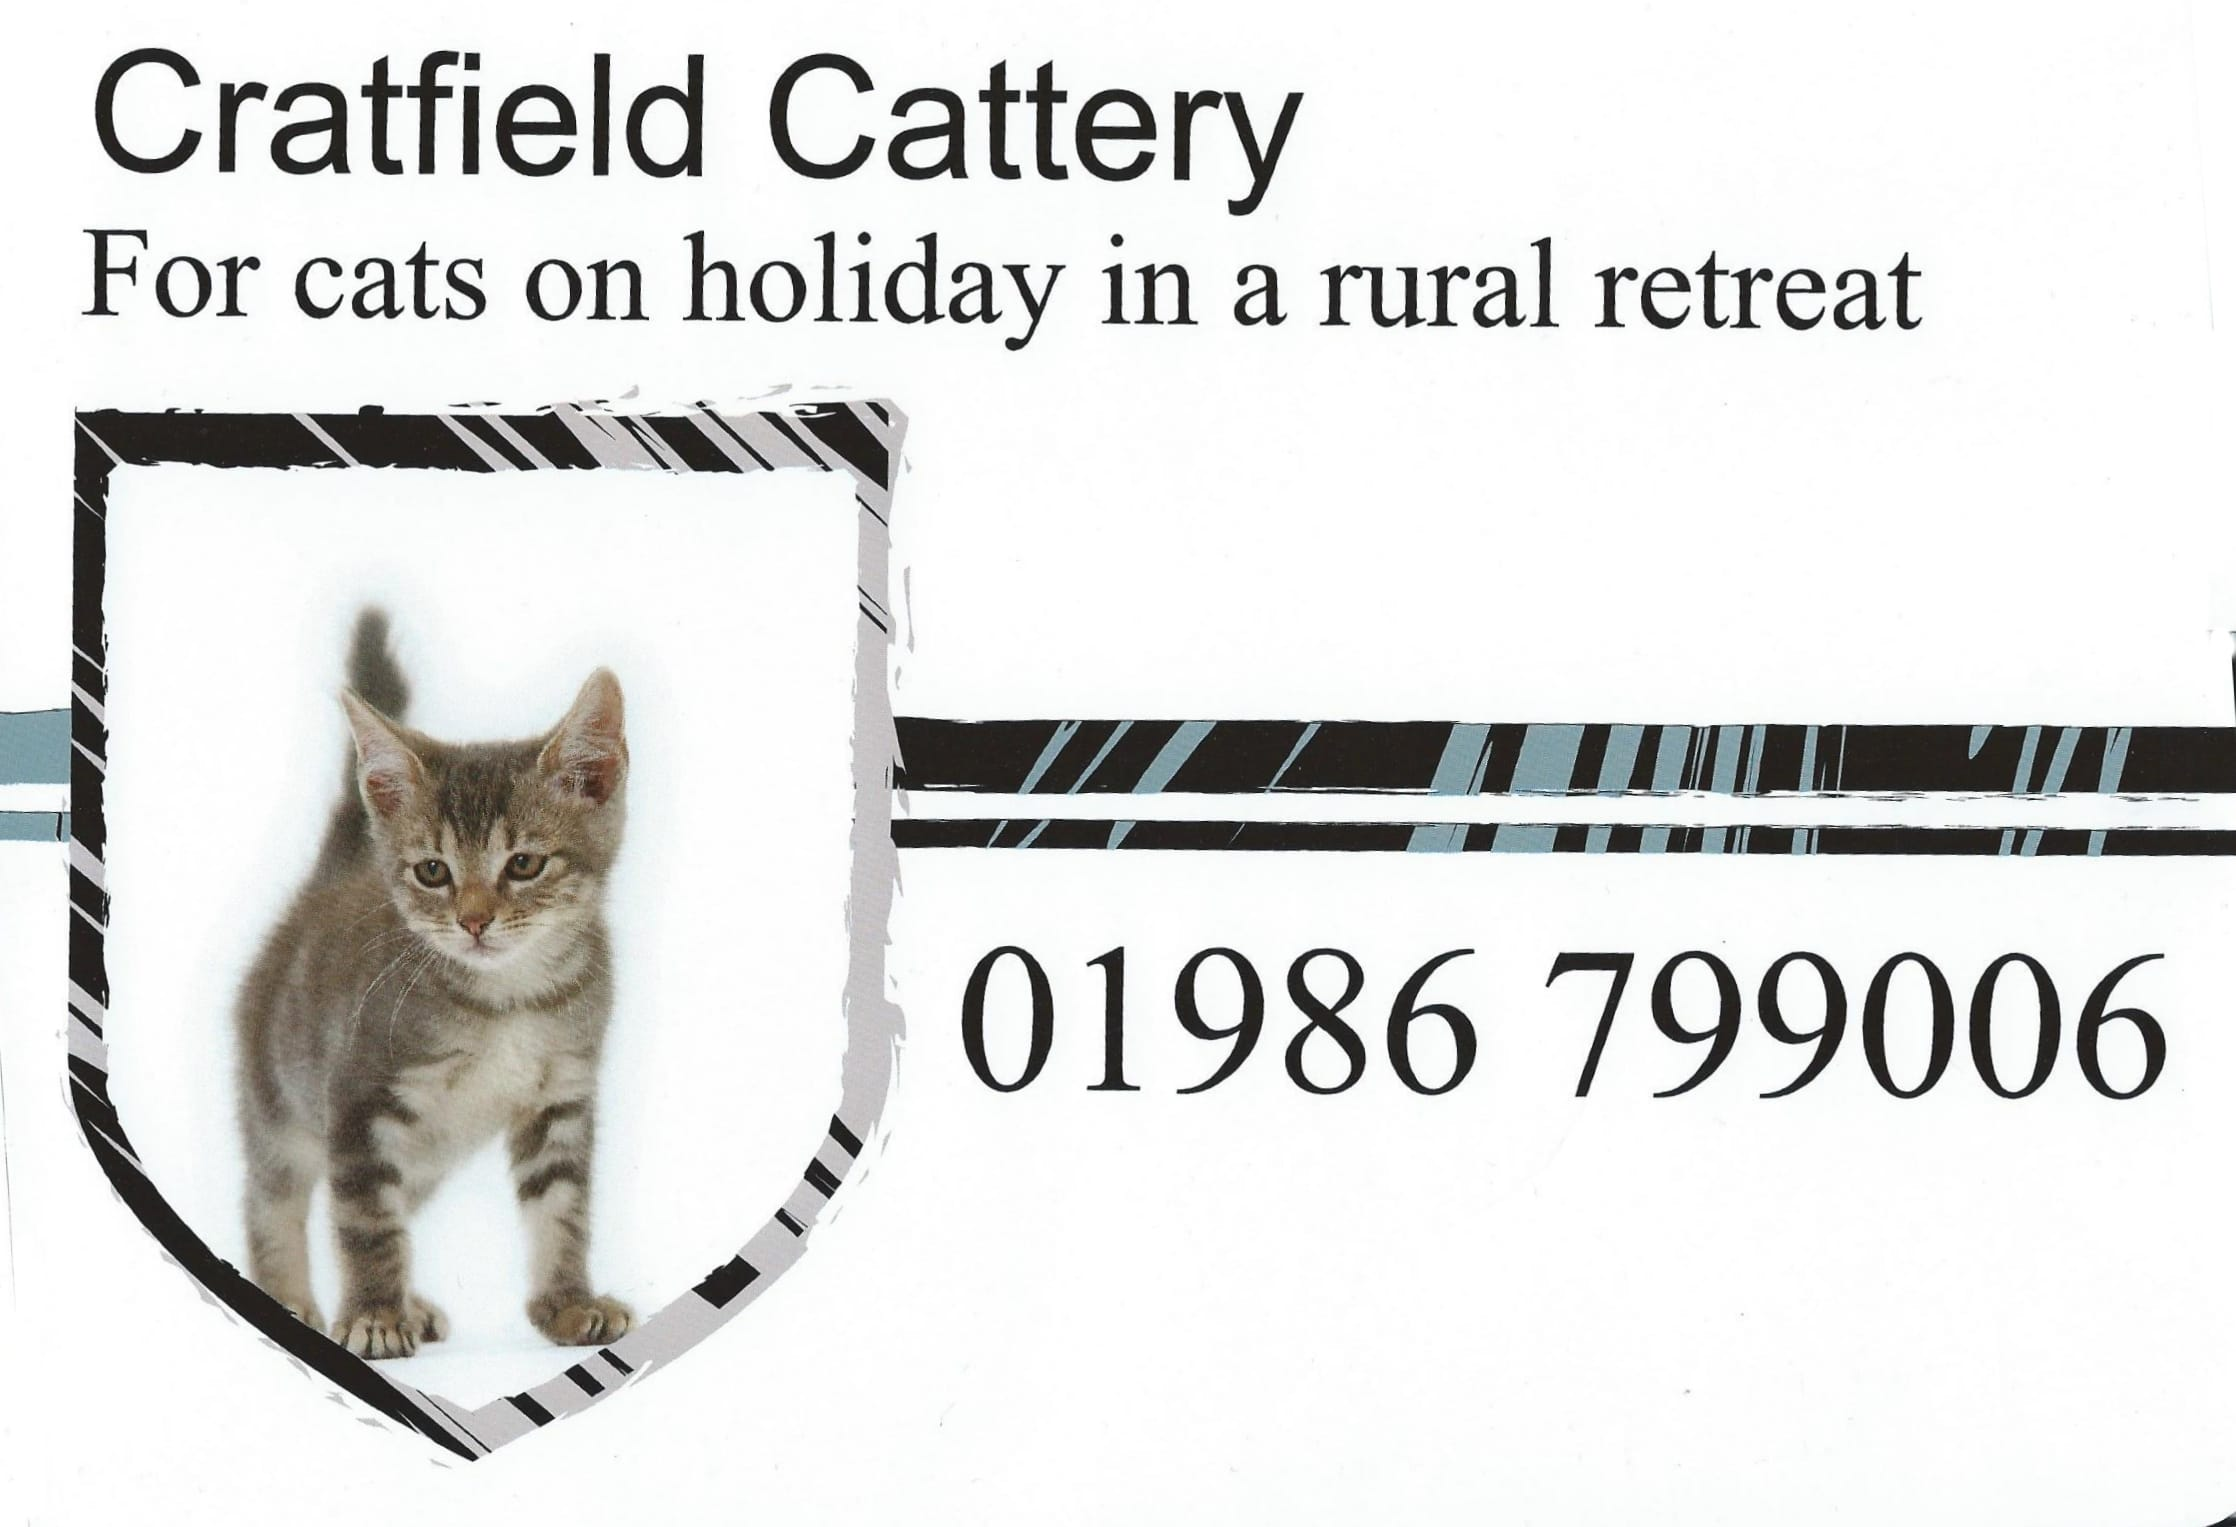 Cratfield cattery